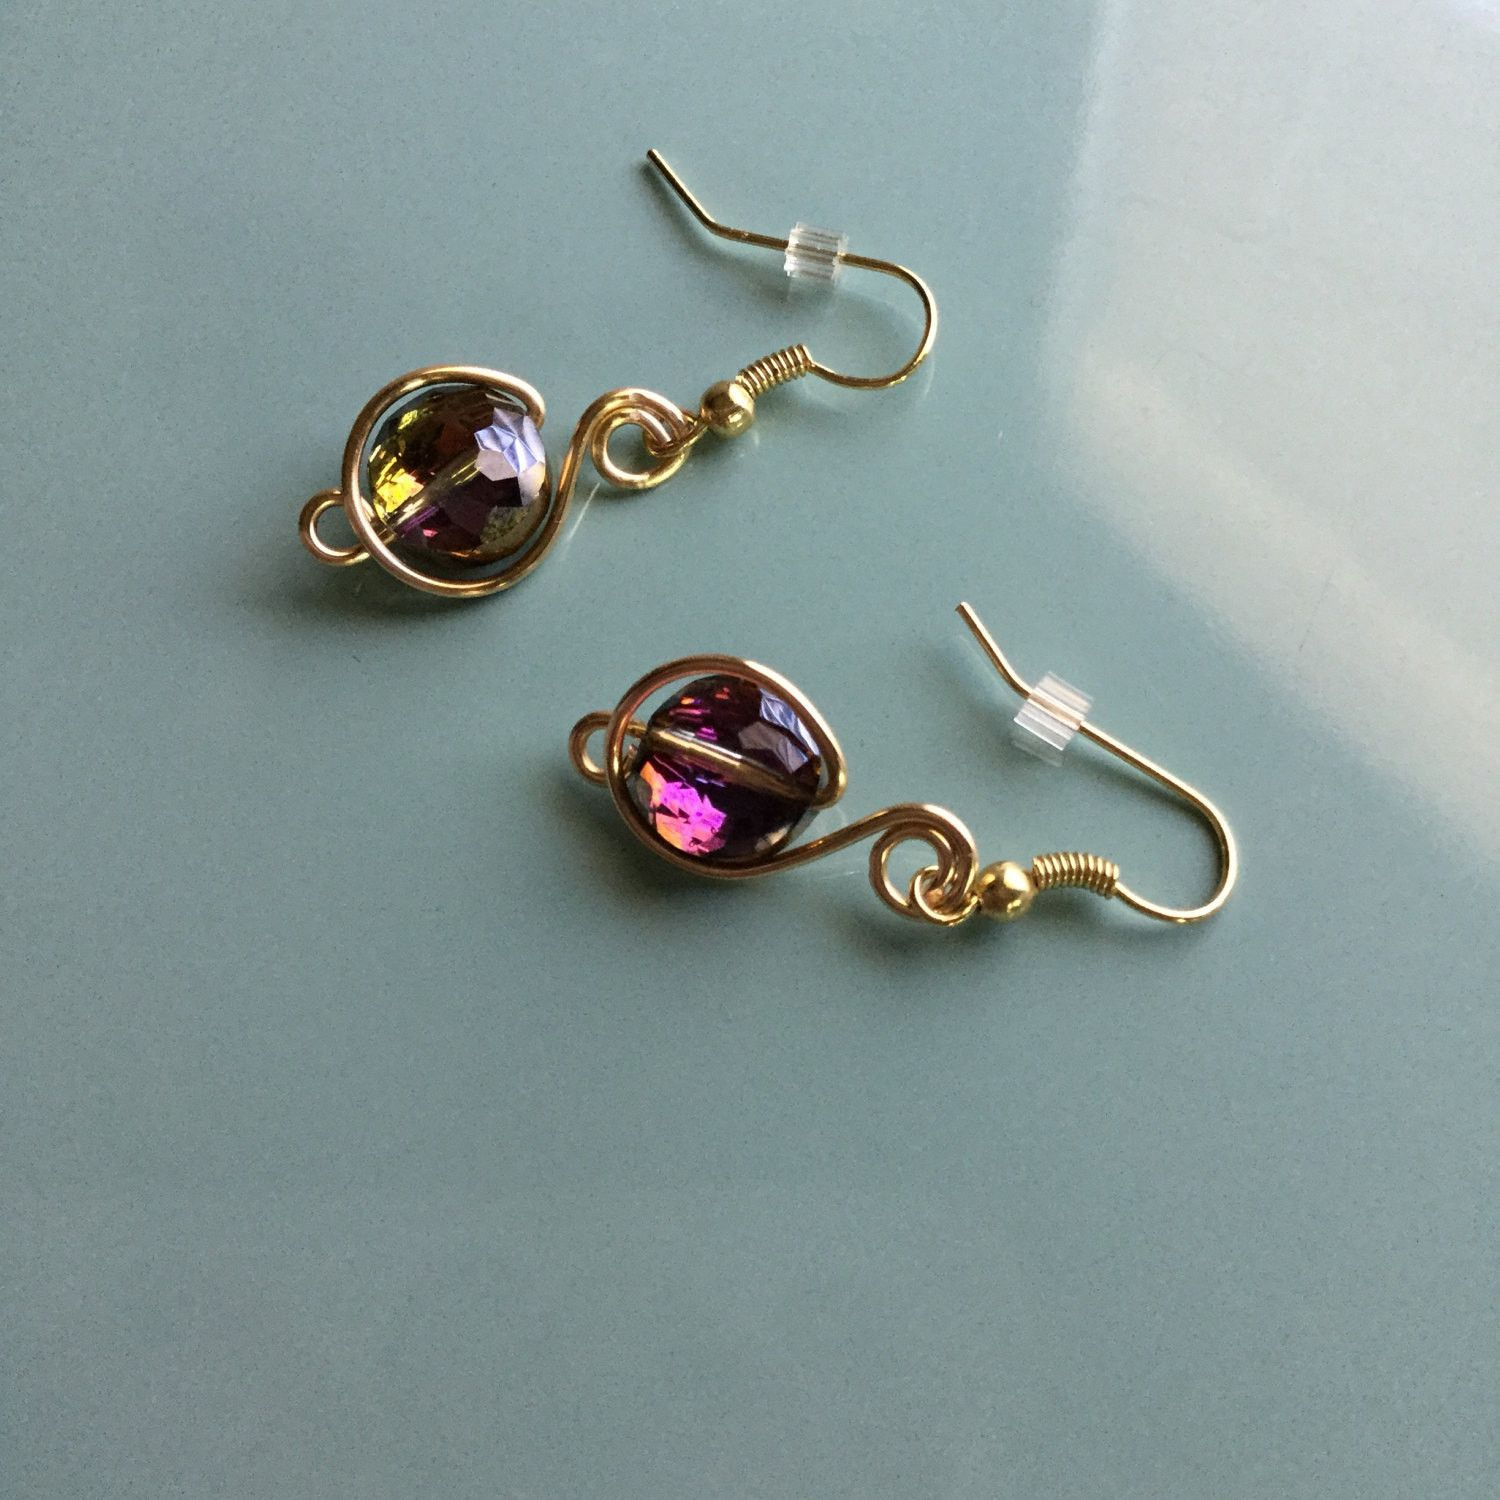 Sold Handmade One Of A Kind Dangle Earring Etsy Er Gold Jewelry Etsyer Womens